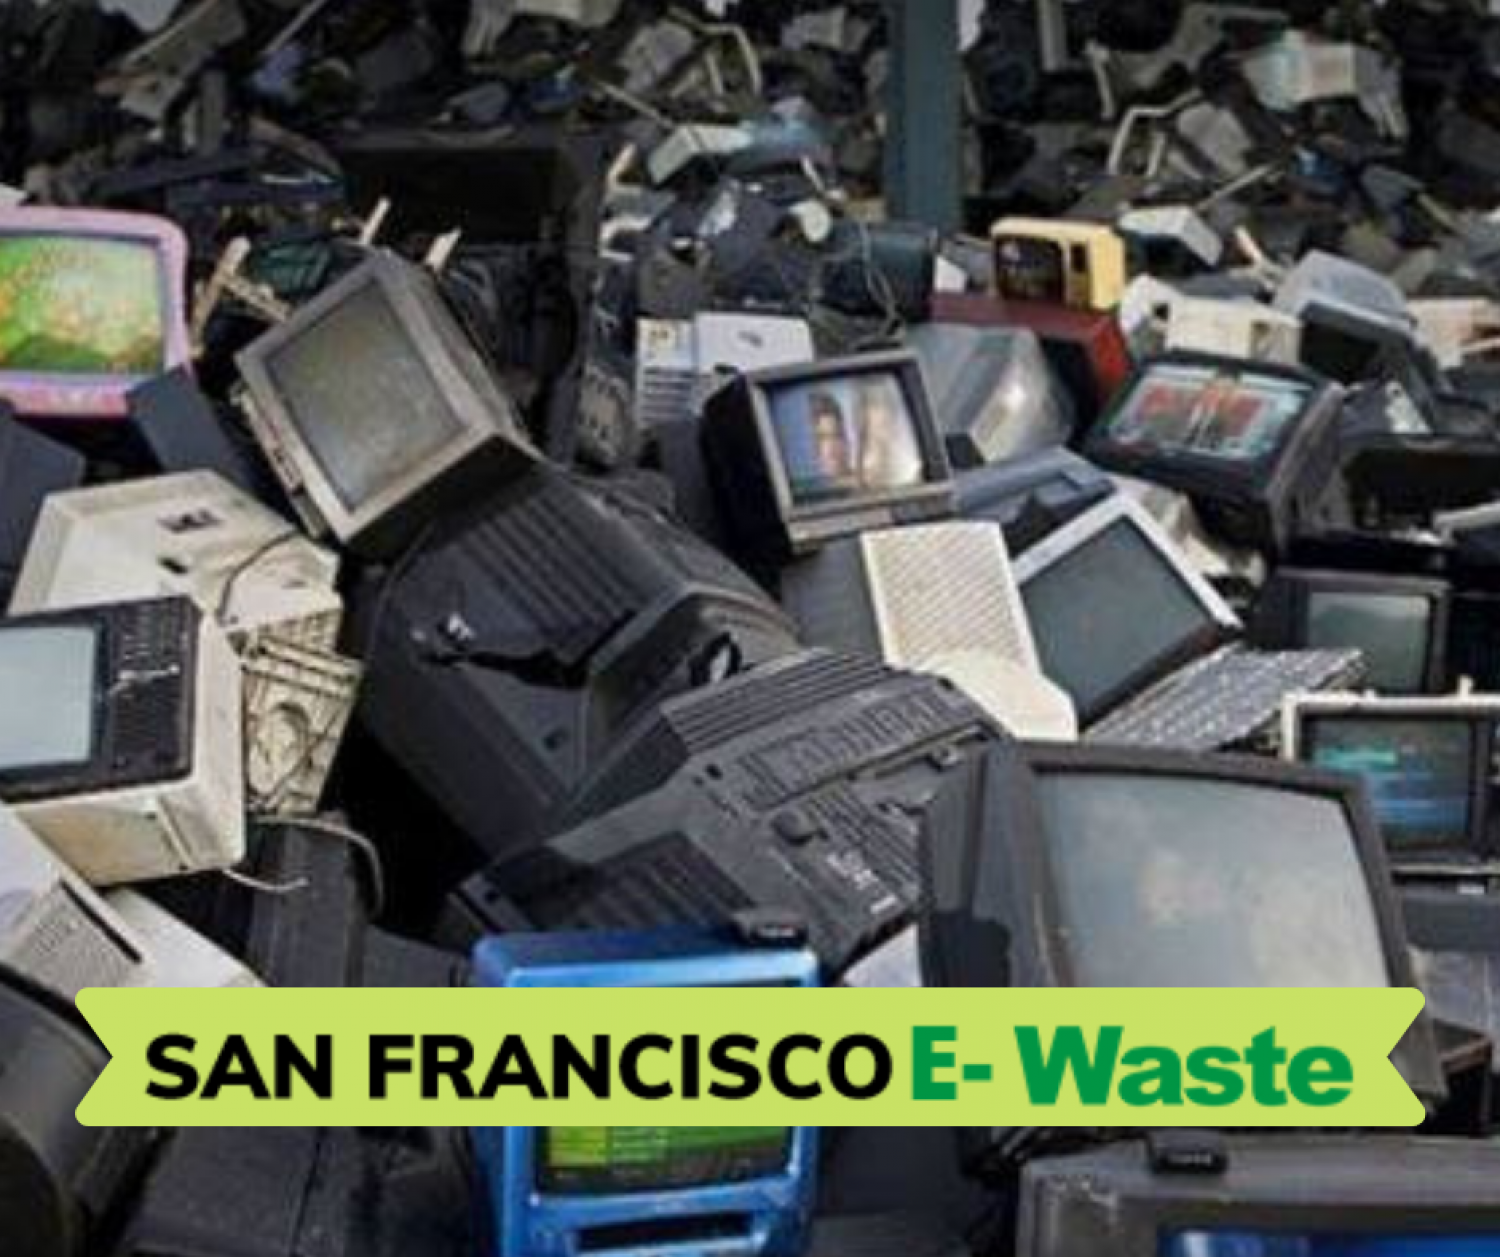 Estimated 5 million television sets are dumped each year Infographic